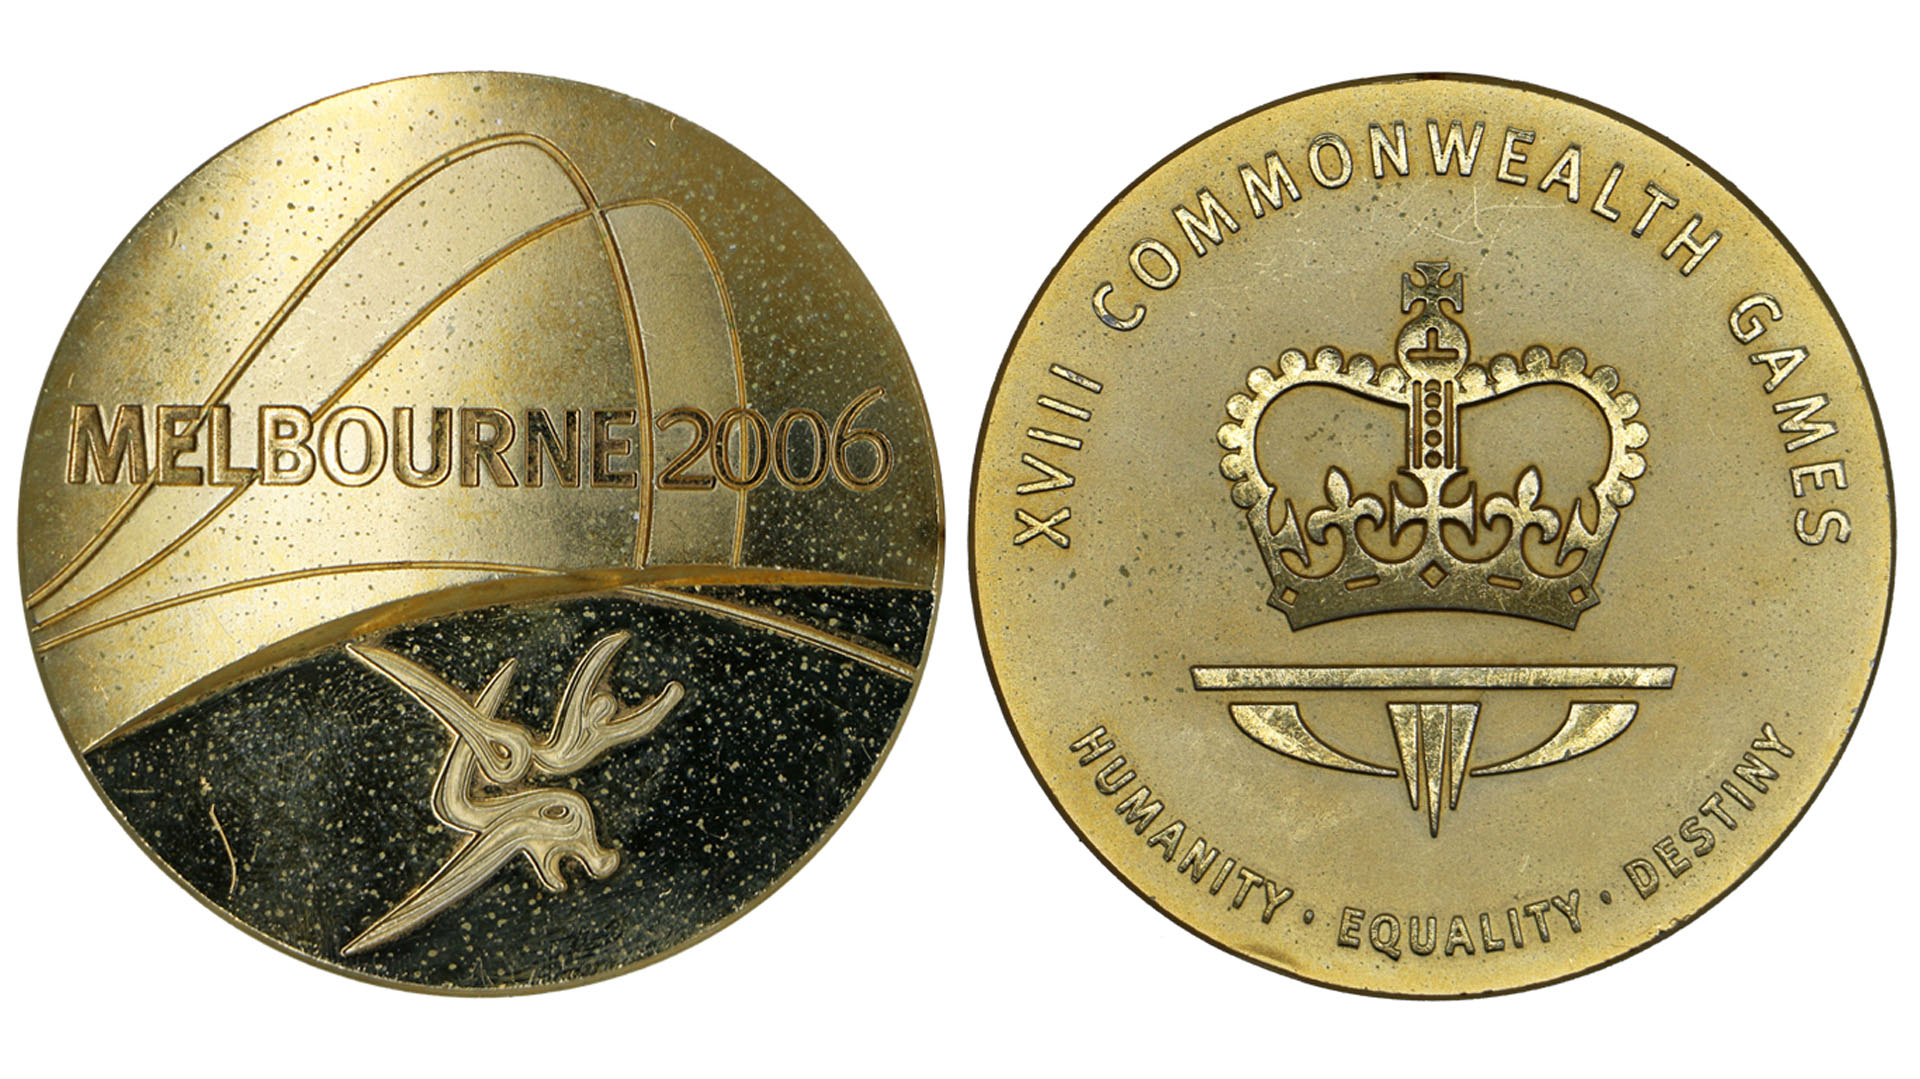 Australia's two-time Olympian and world record breaking swimmer, Brenton Rickard's 2006 Commonwealth Games gold medal from the men's 4x100m Medley Relay.